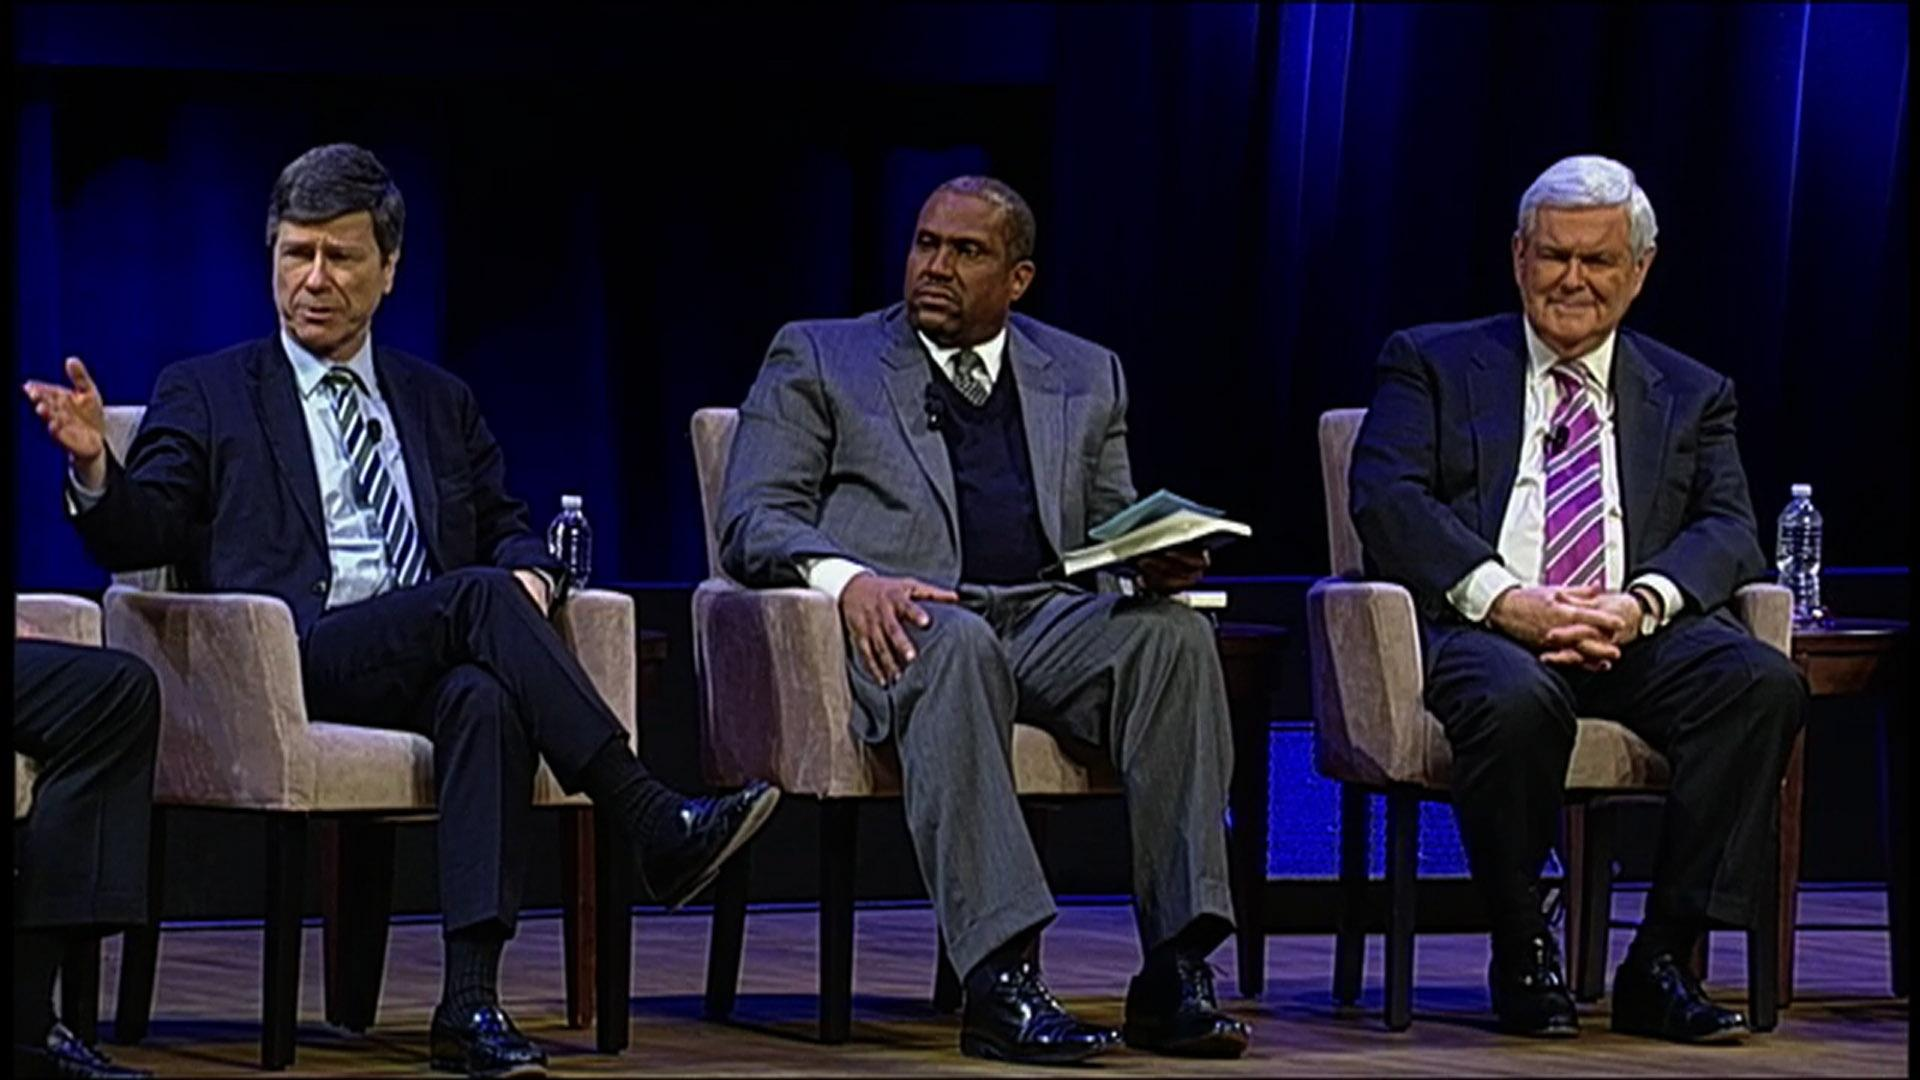 'Vision for a New America' panel discussion - Part 3 image